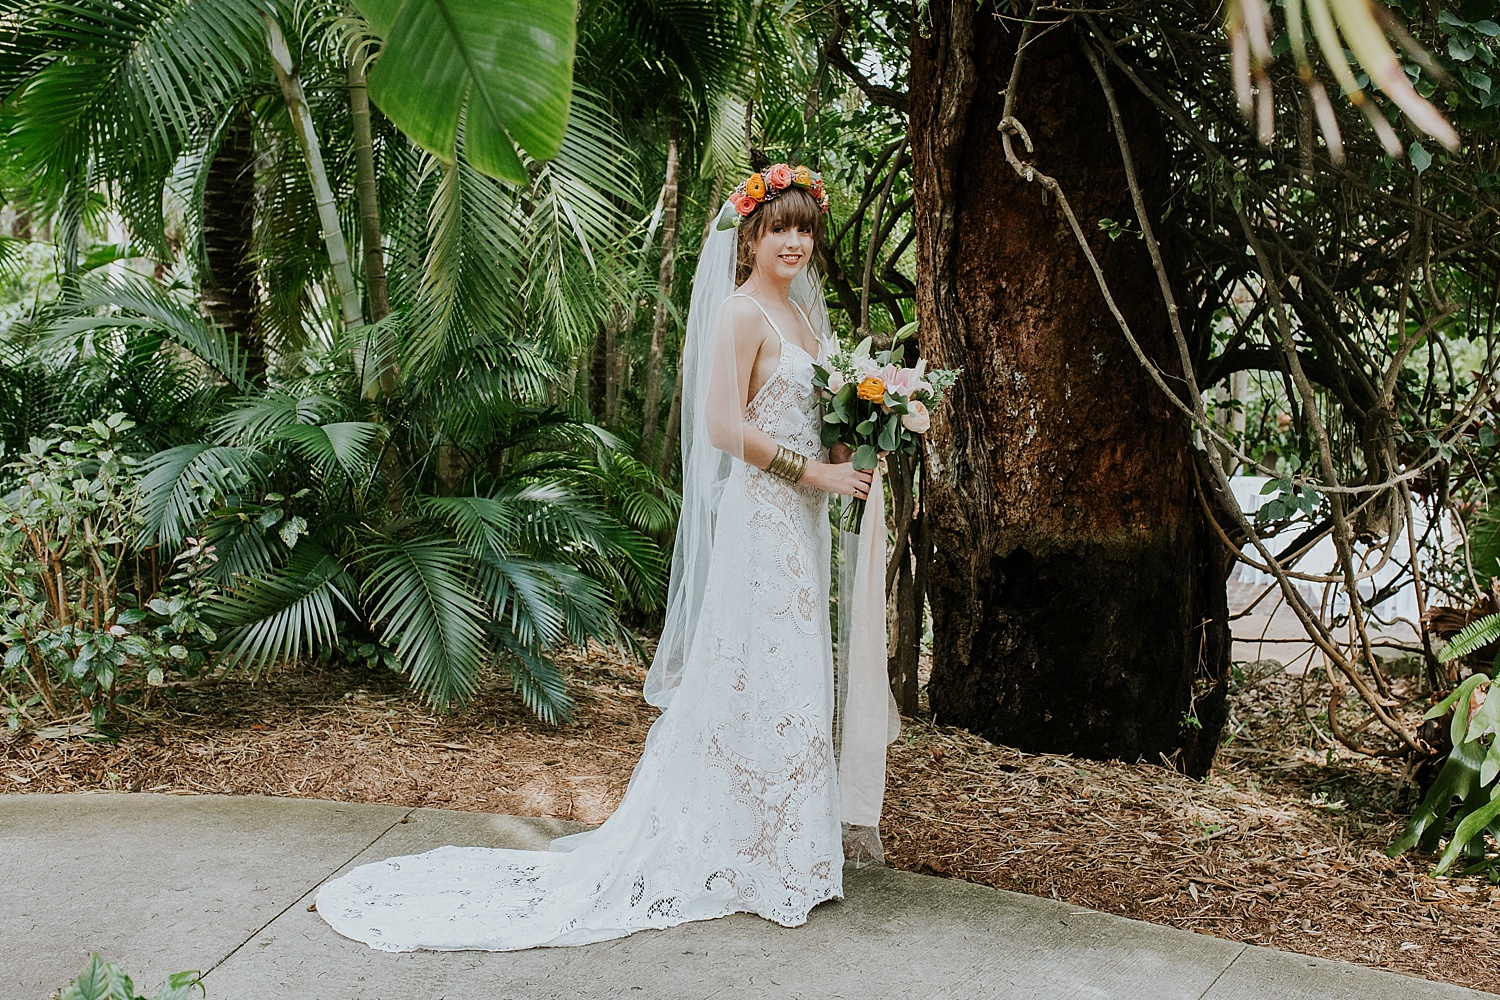 Sunken Garden Wedding Photos, Sunken Garden Weddings, Sunken Gardens Wedding Photographers, Tampa Wedding Photographers, Ashley Izquierdo, Sunken Garden Wedding Pictures, Wedding Pics at Sunken Gardens, St Pete Wedding Photographers, St Pete Wedding Venues, Garden Wedding Venues, Florida Garden Wedding Venues, Boho Wedding Photos, Boho Wedding Inspiration, Sunken Gardens, St Petersburg Wedding Photographers, St Petersburg Wedding Photos, Boho Brides, Florist Fire, Florida Wedding Photographers